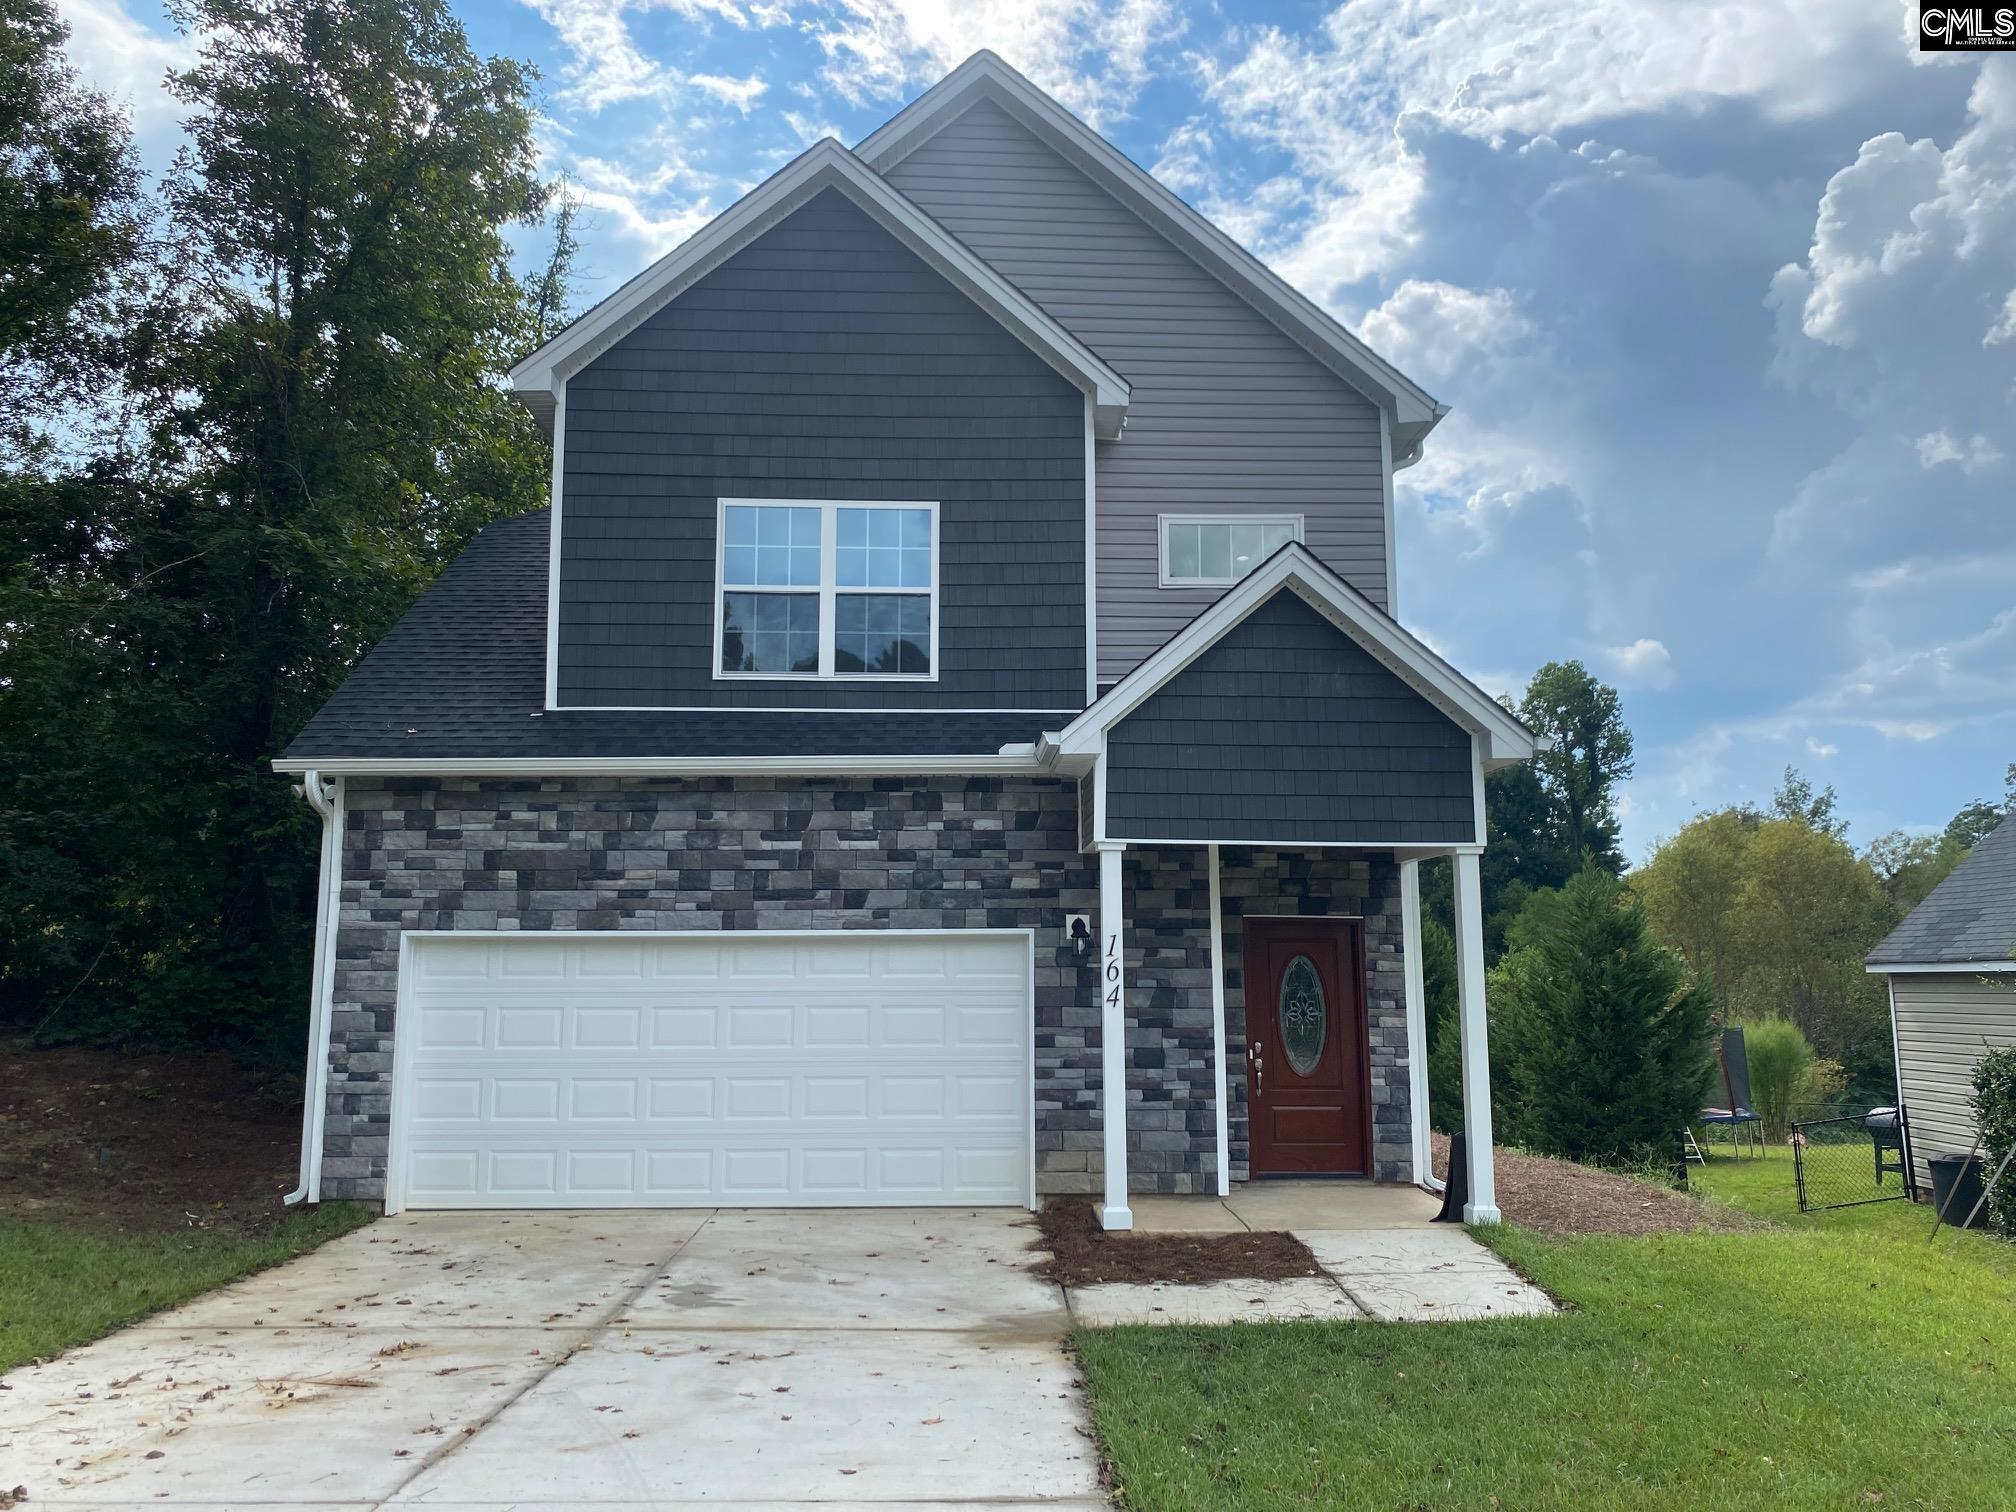 164 Darby Way West Columbia, SC 29170